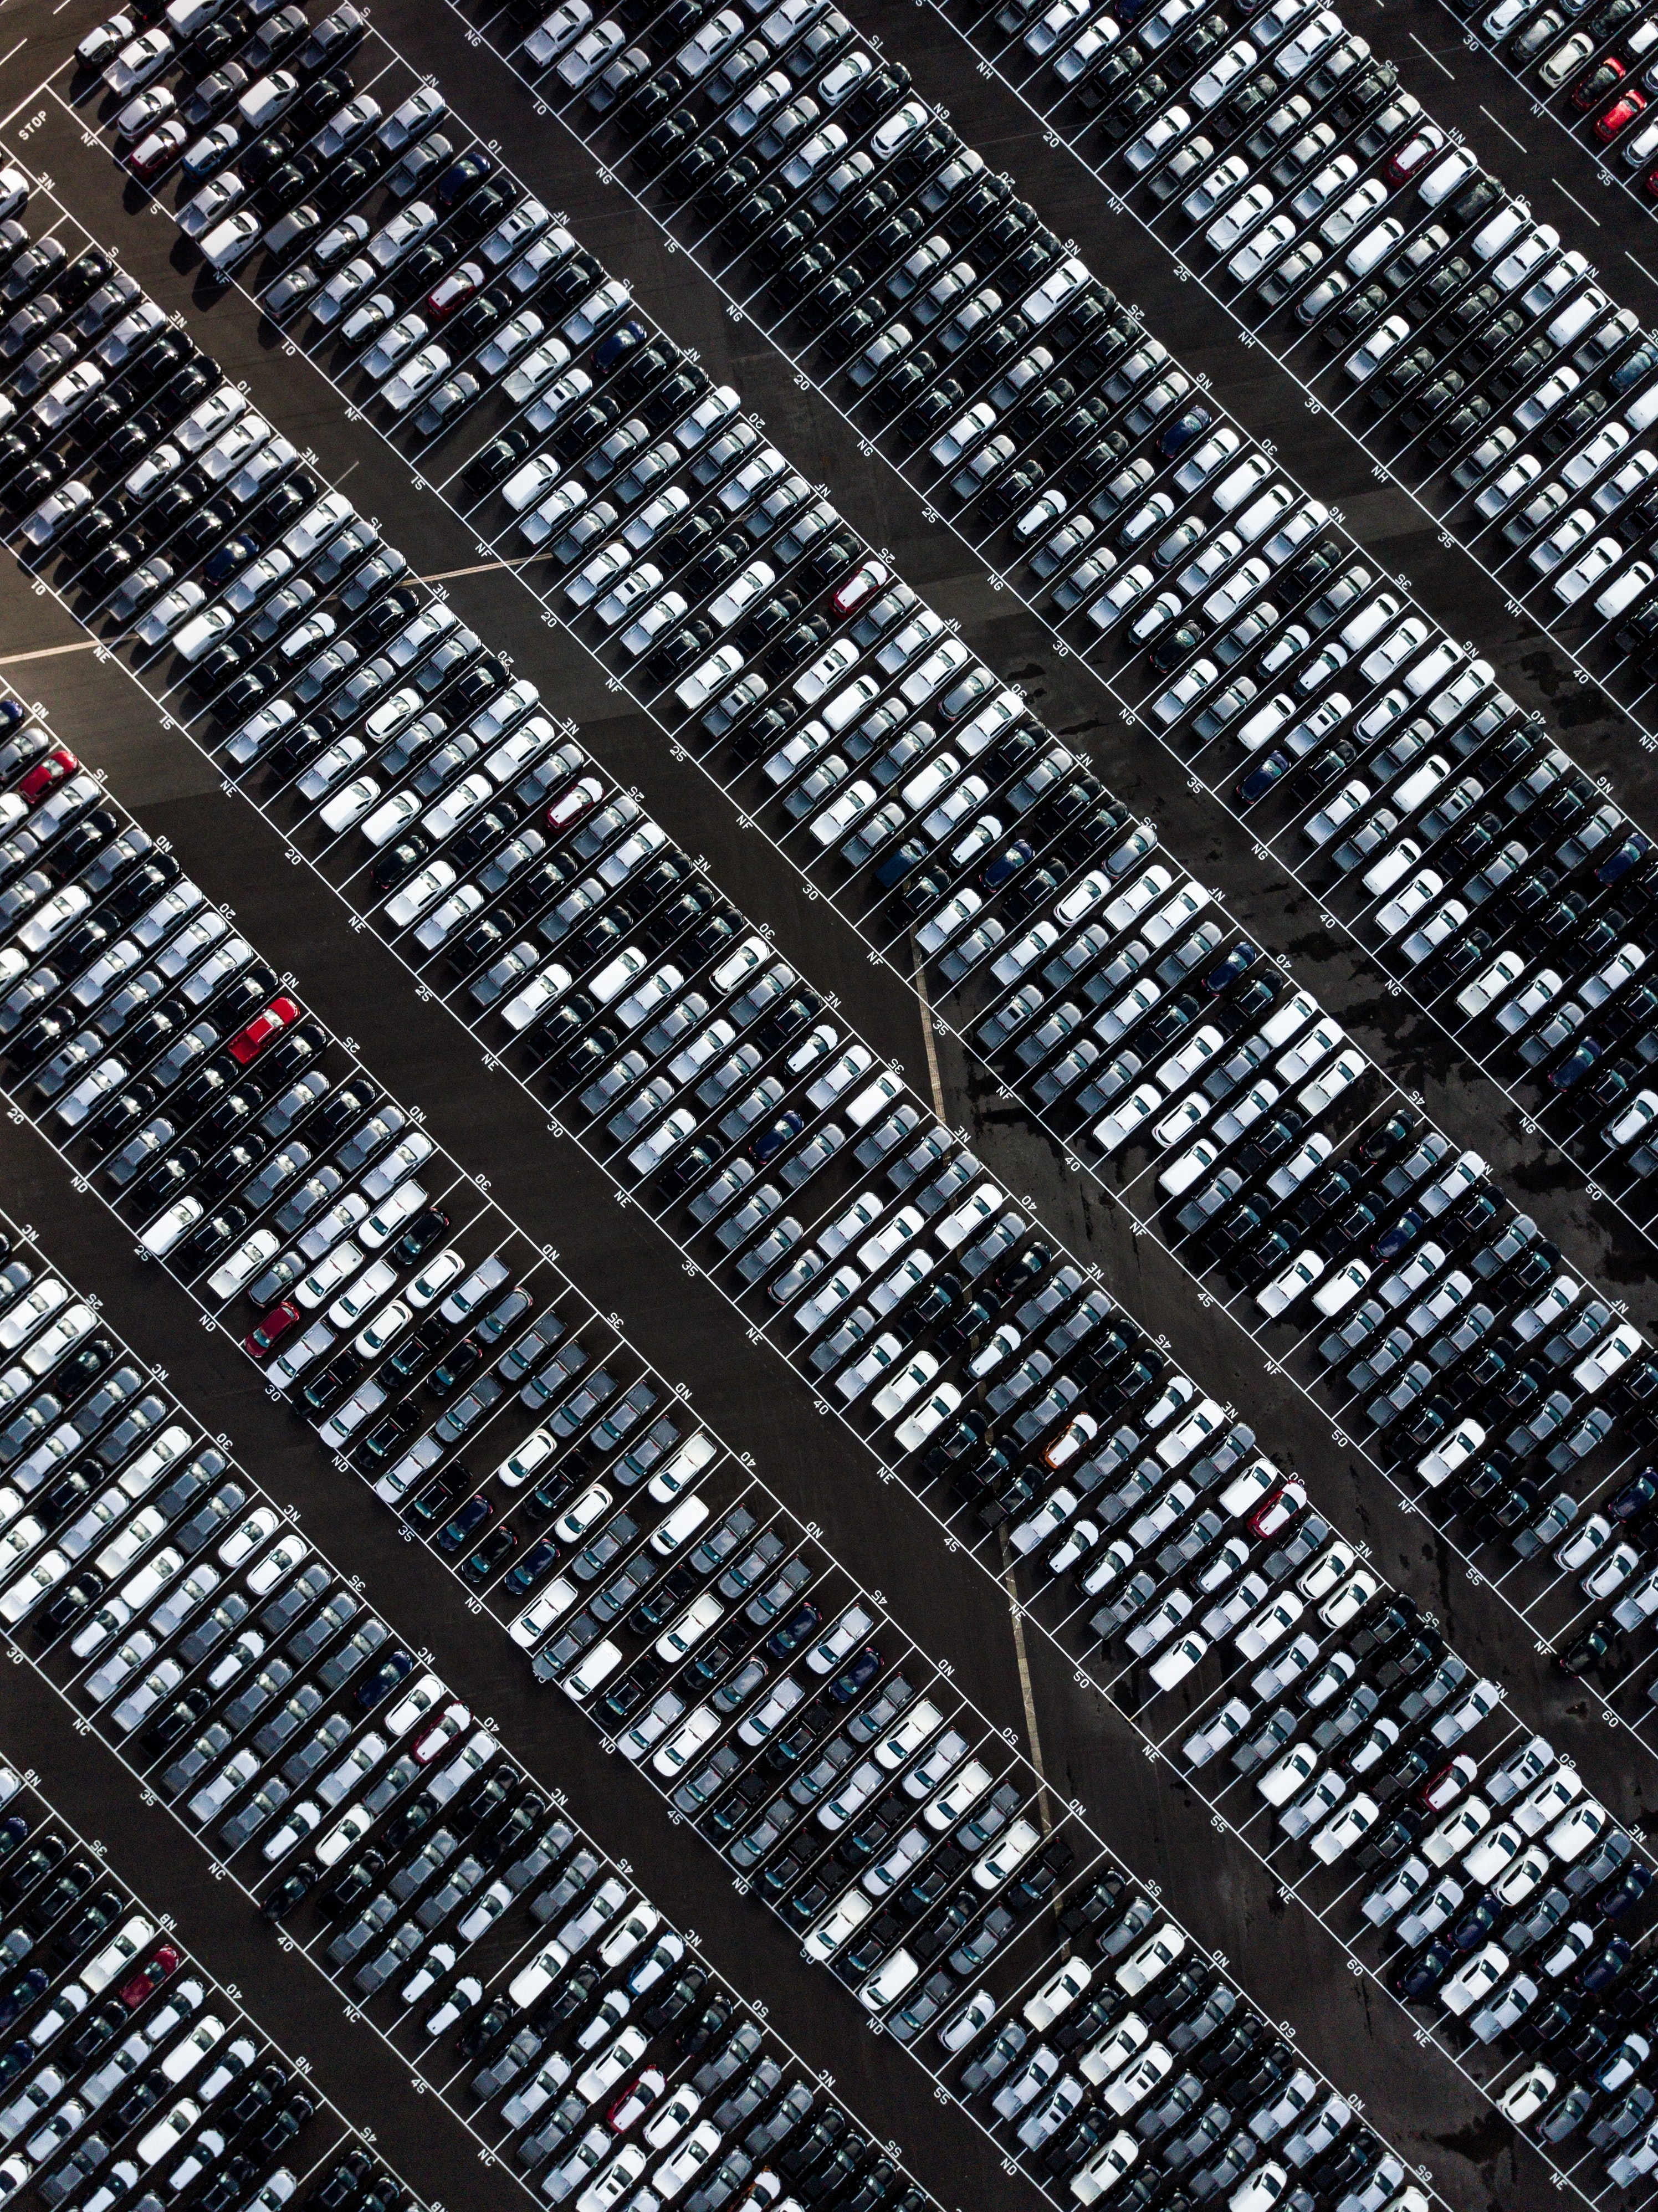 aerial photography of parking lot